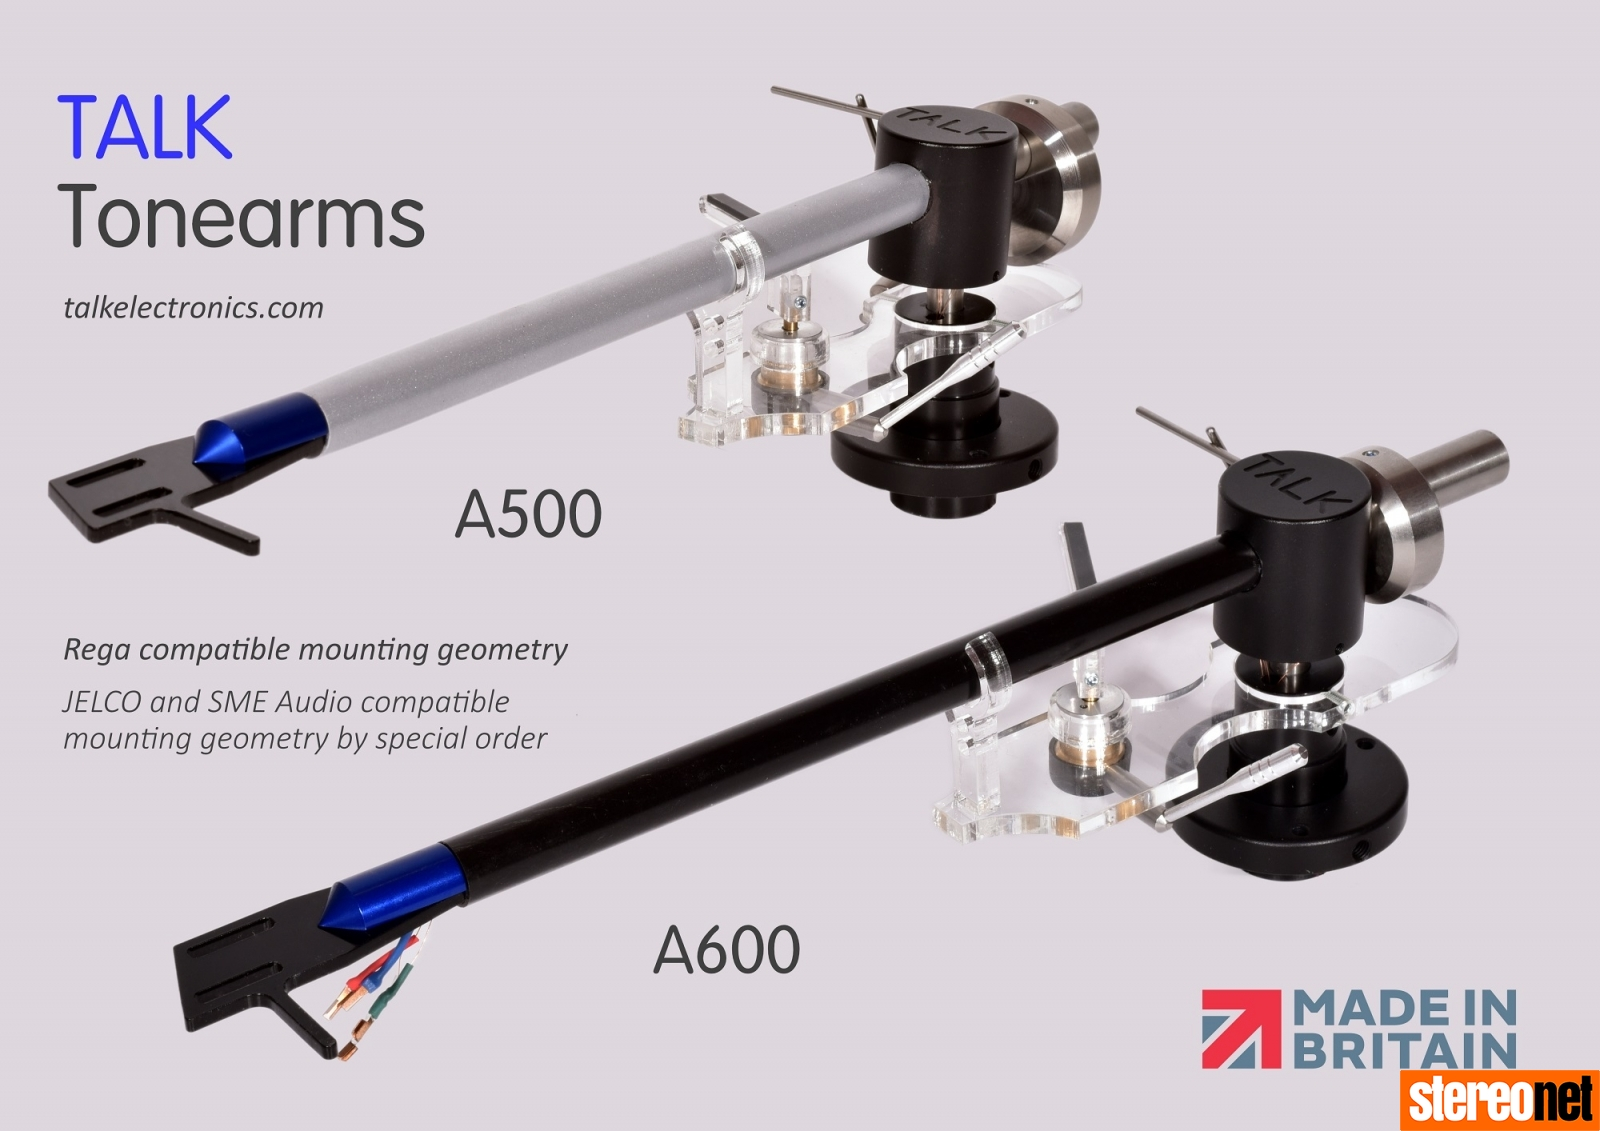 TALK A500 and A600 Tonearms